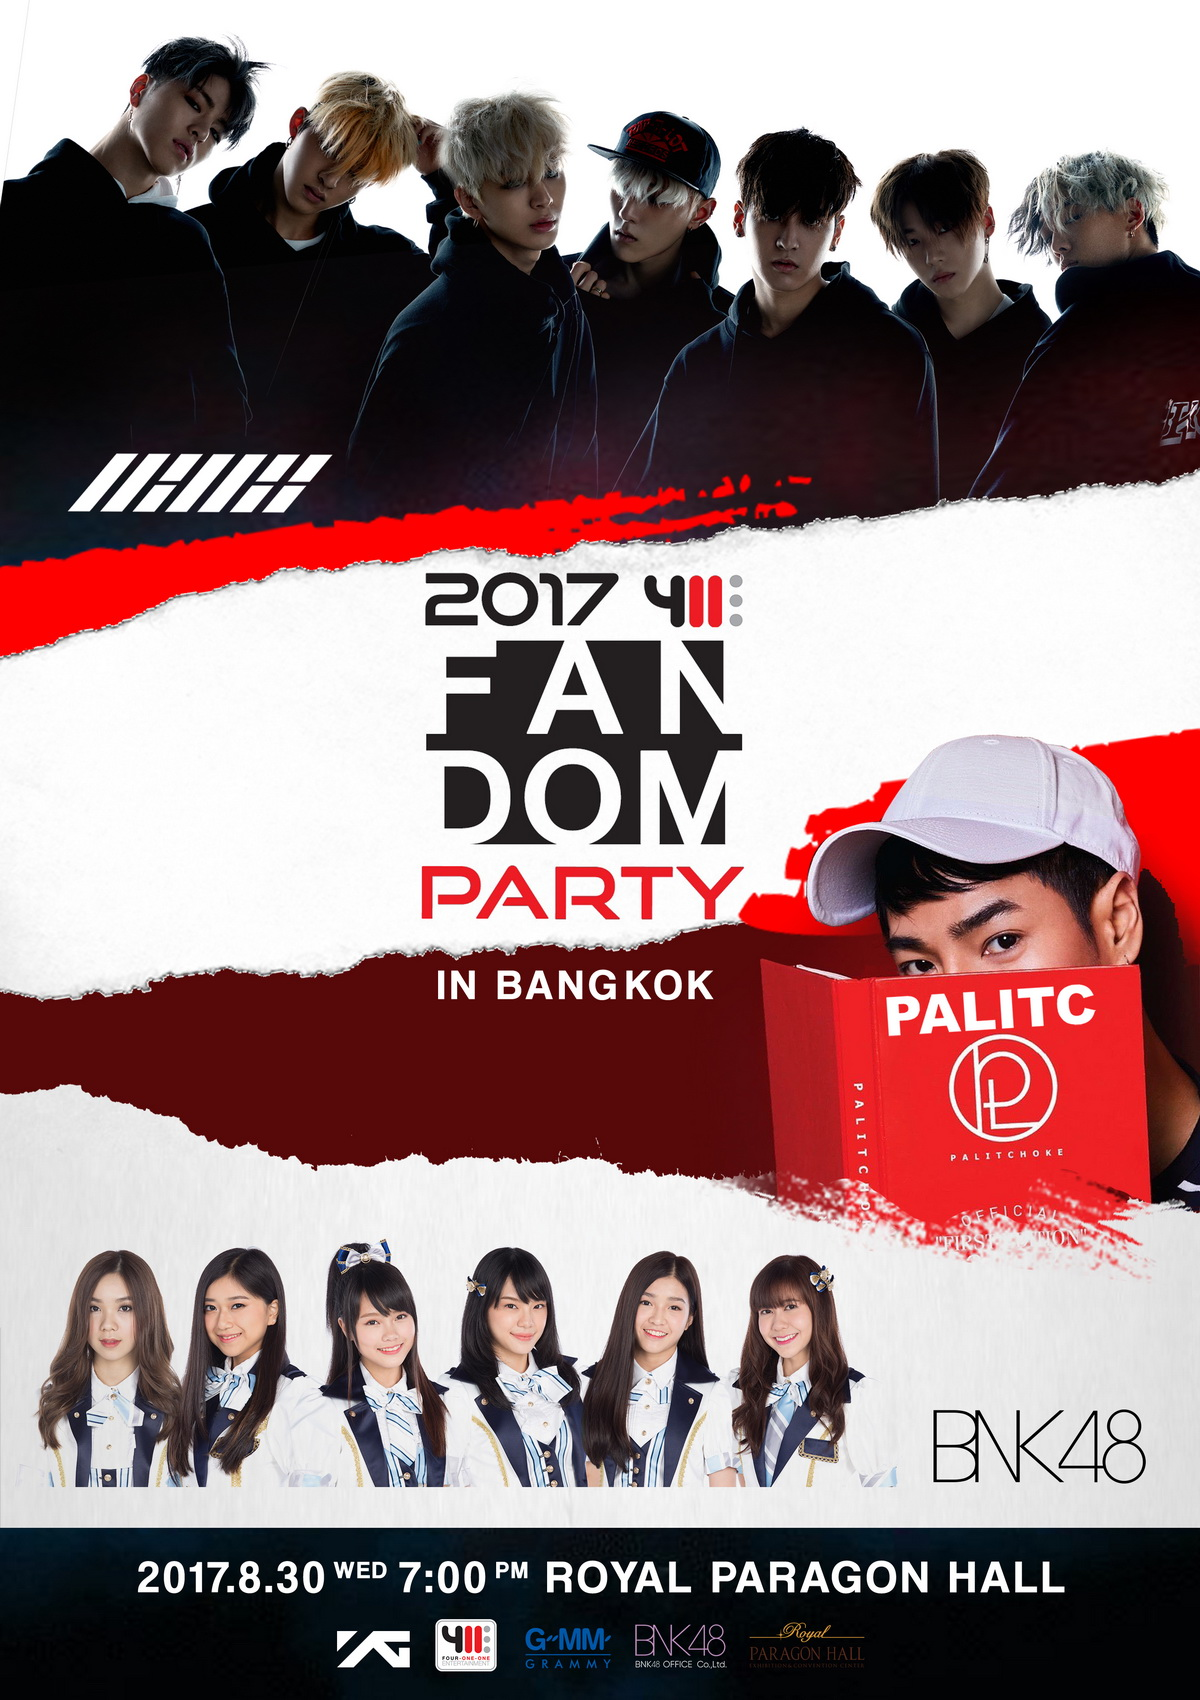 Poster – 2017 411 FANDOM PARTY IN BANGKOK